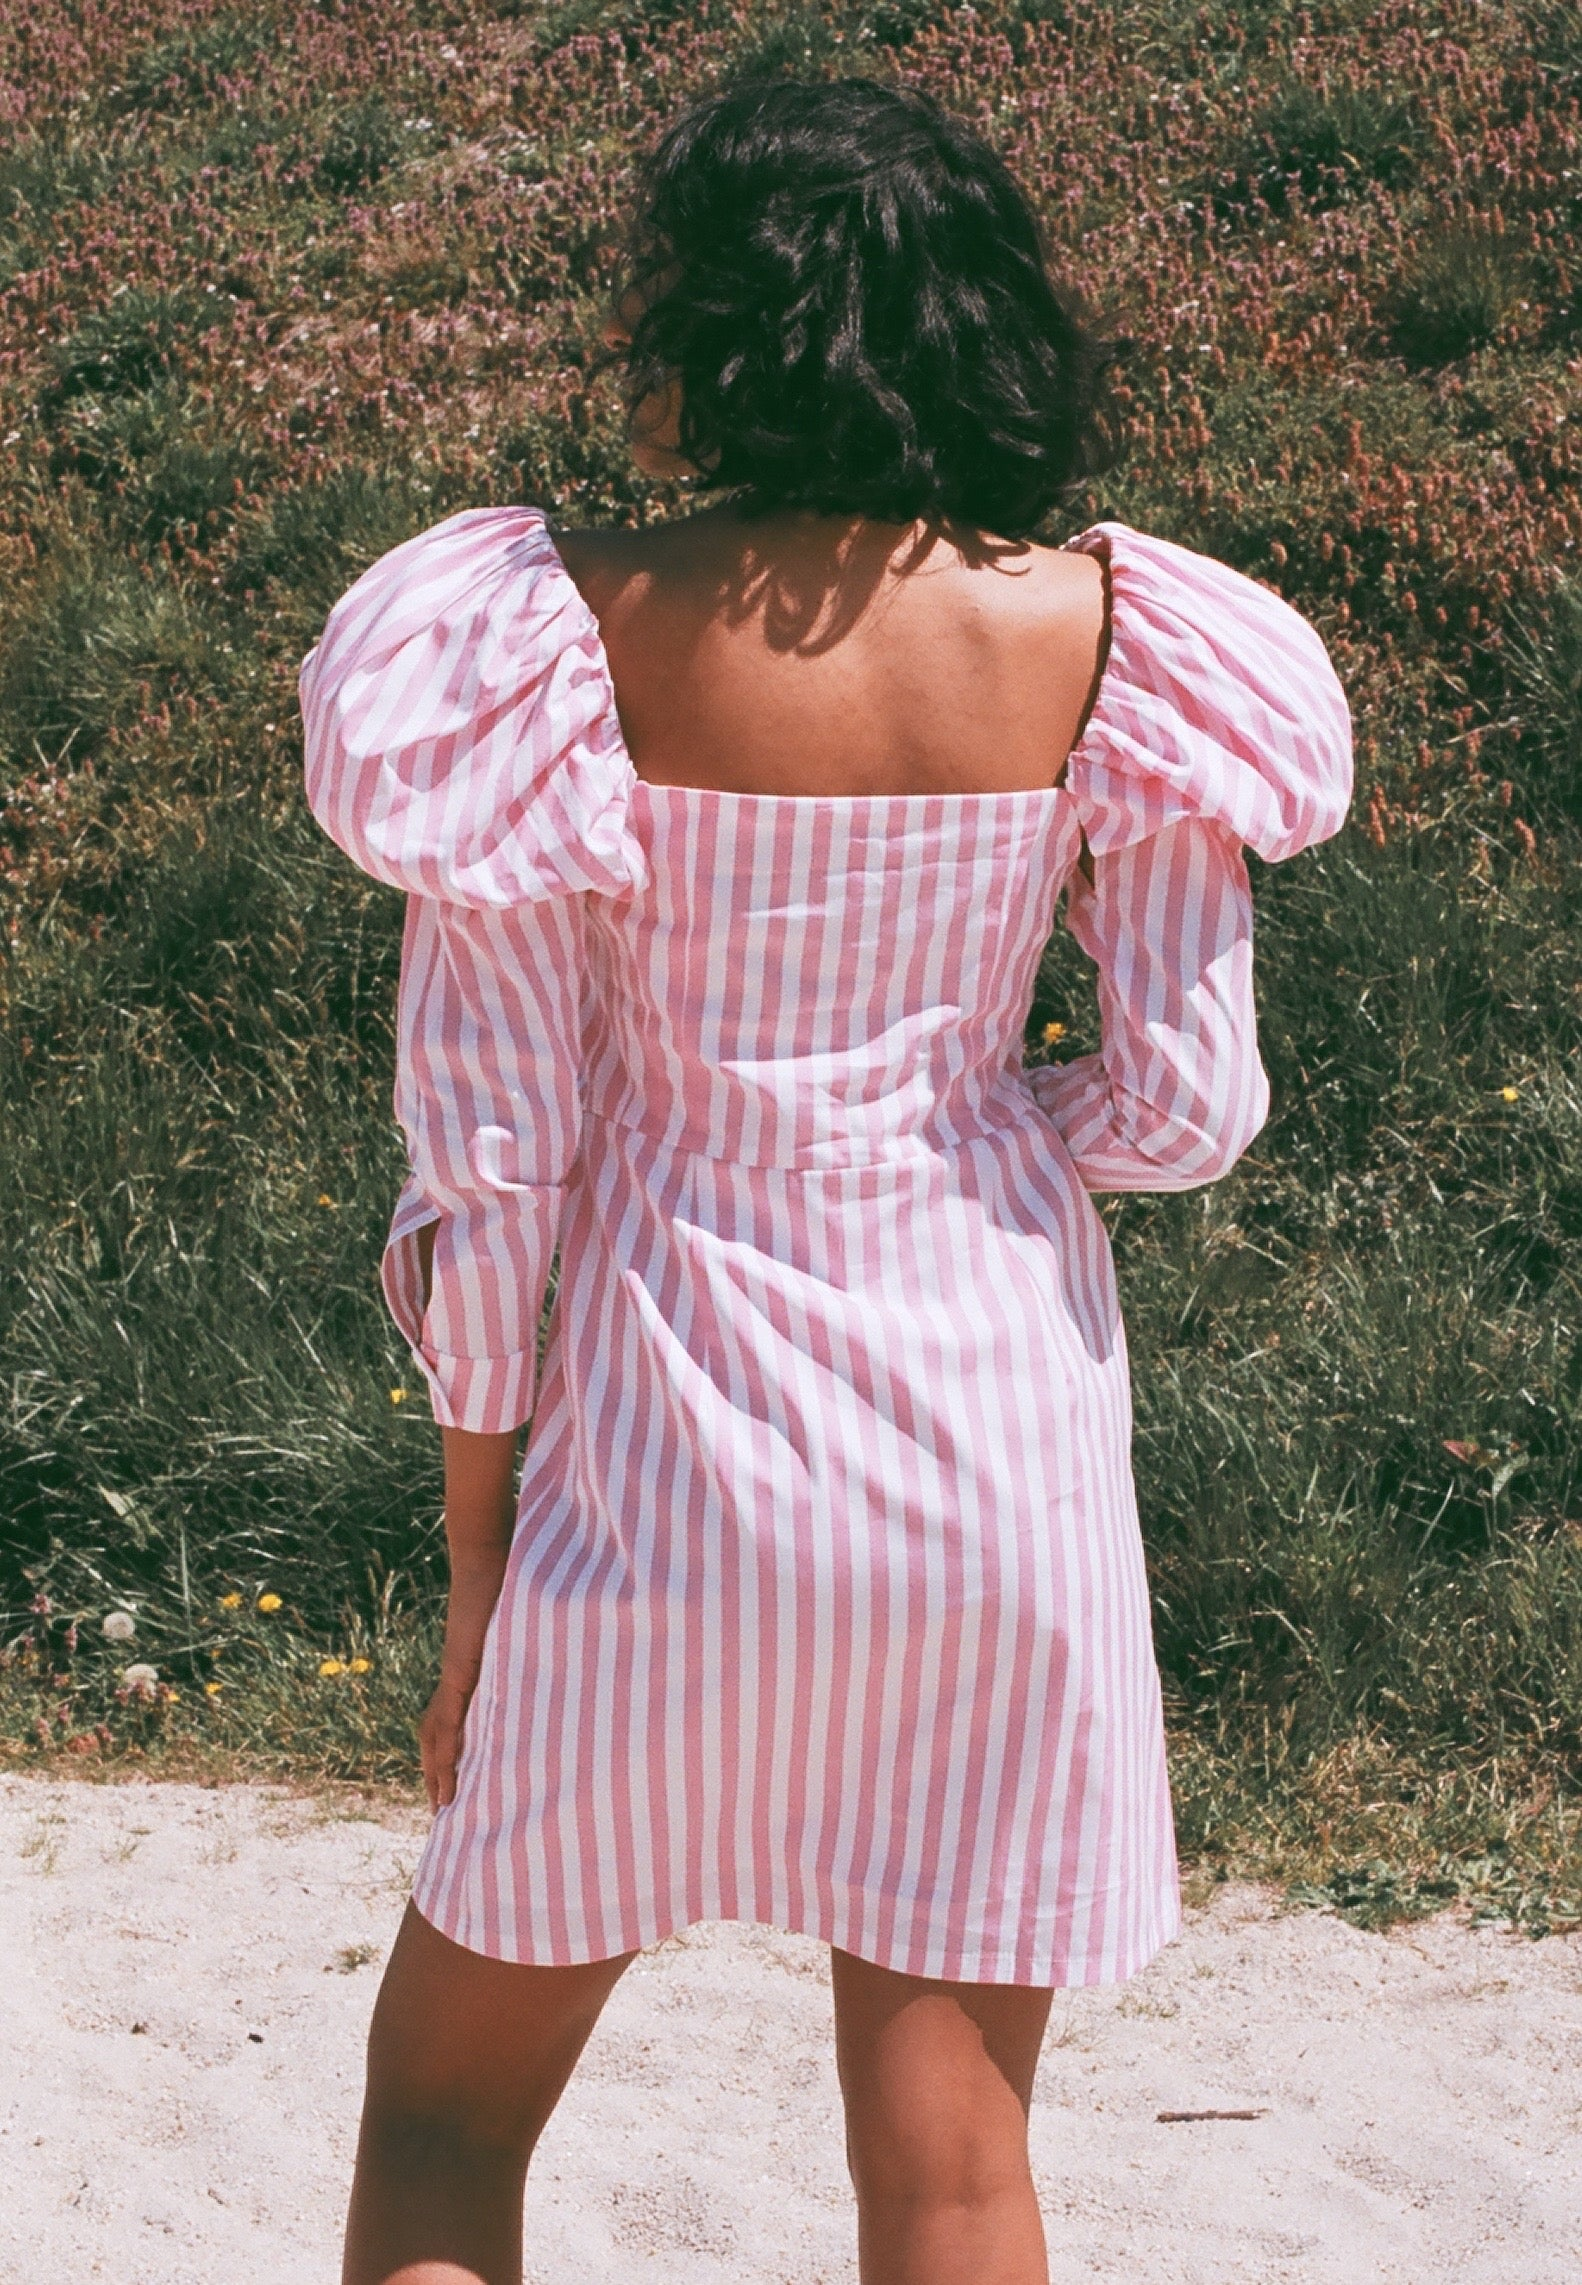 Mr. Larkin Penelope Dress / Pink Stripe